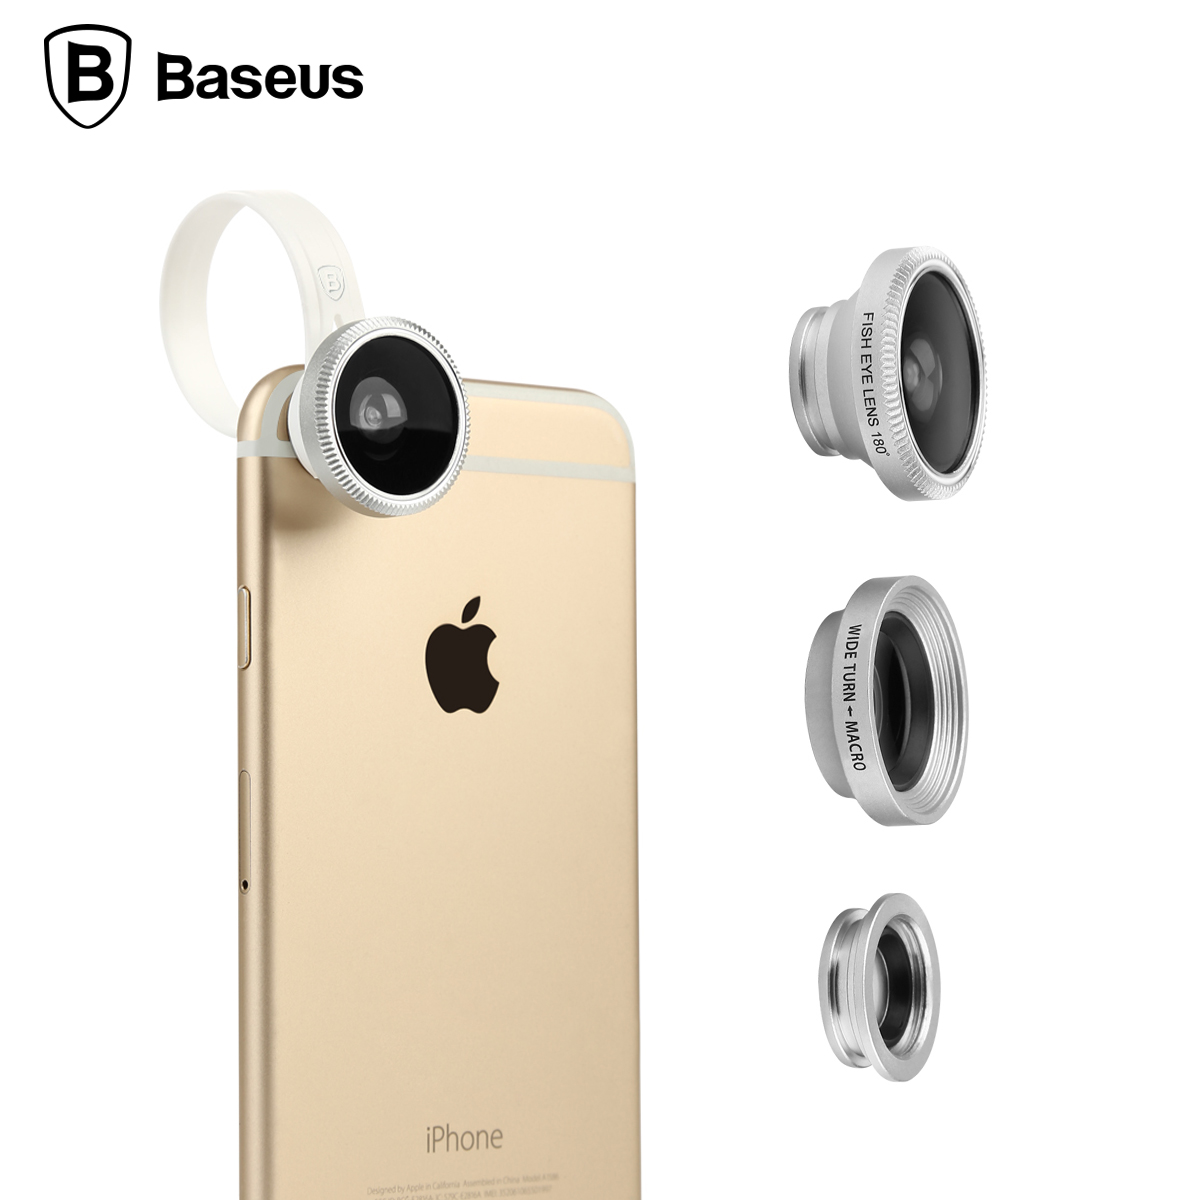 3C Specialty Store Baseus 180 Degree Fisheye Lens + 0.67x Wide Angle + 10x Macro Lens 3 in 1 Clip-on Camera Lens For iPhone 6 7 Samsung S7 Xiaomi